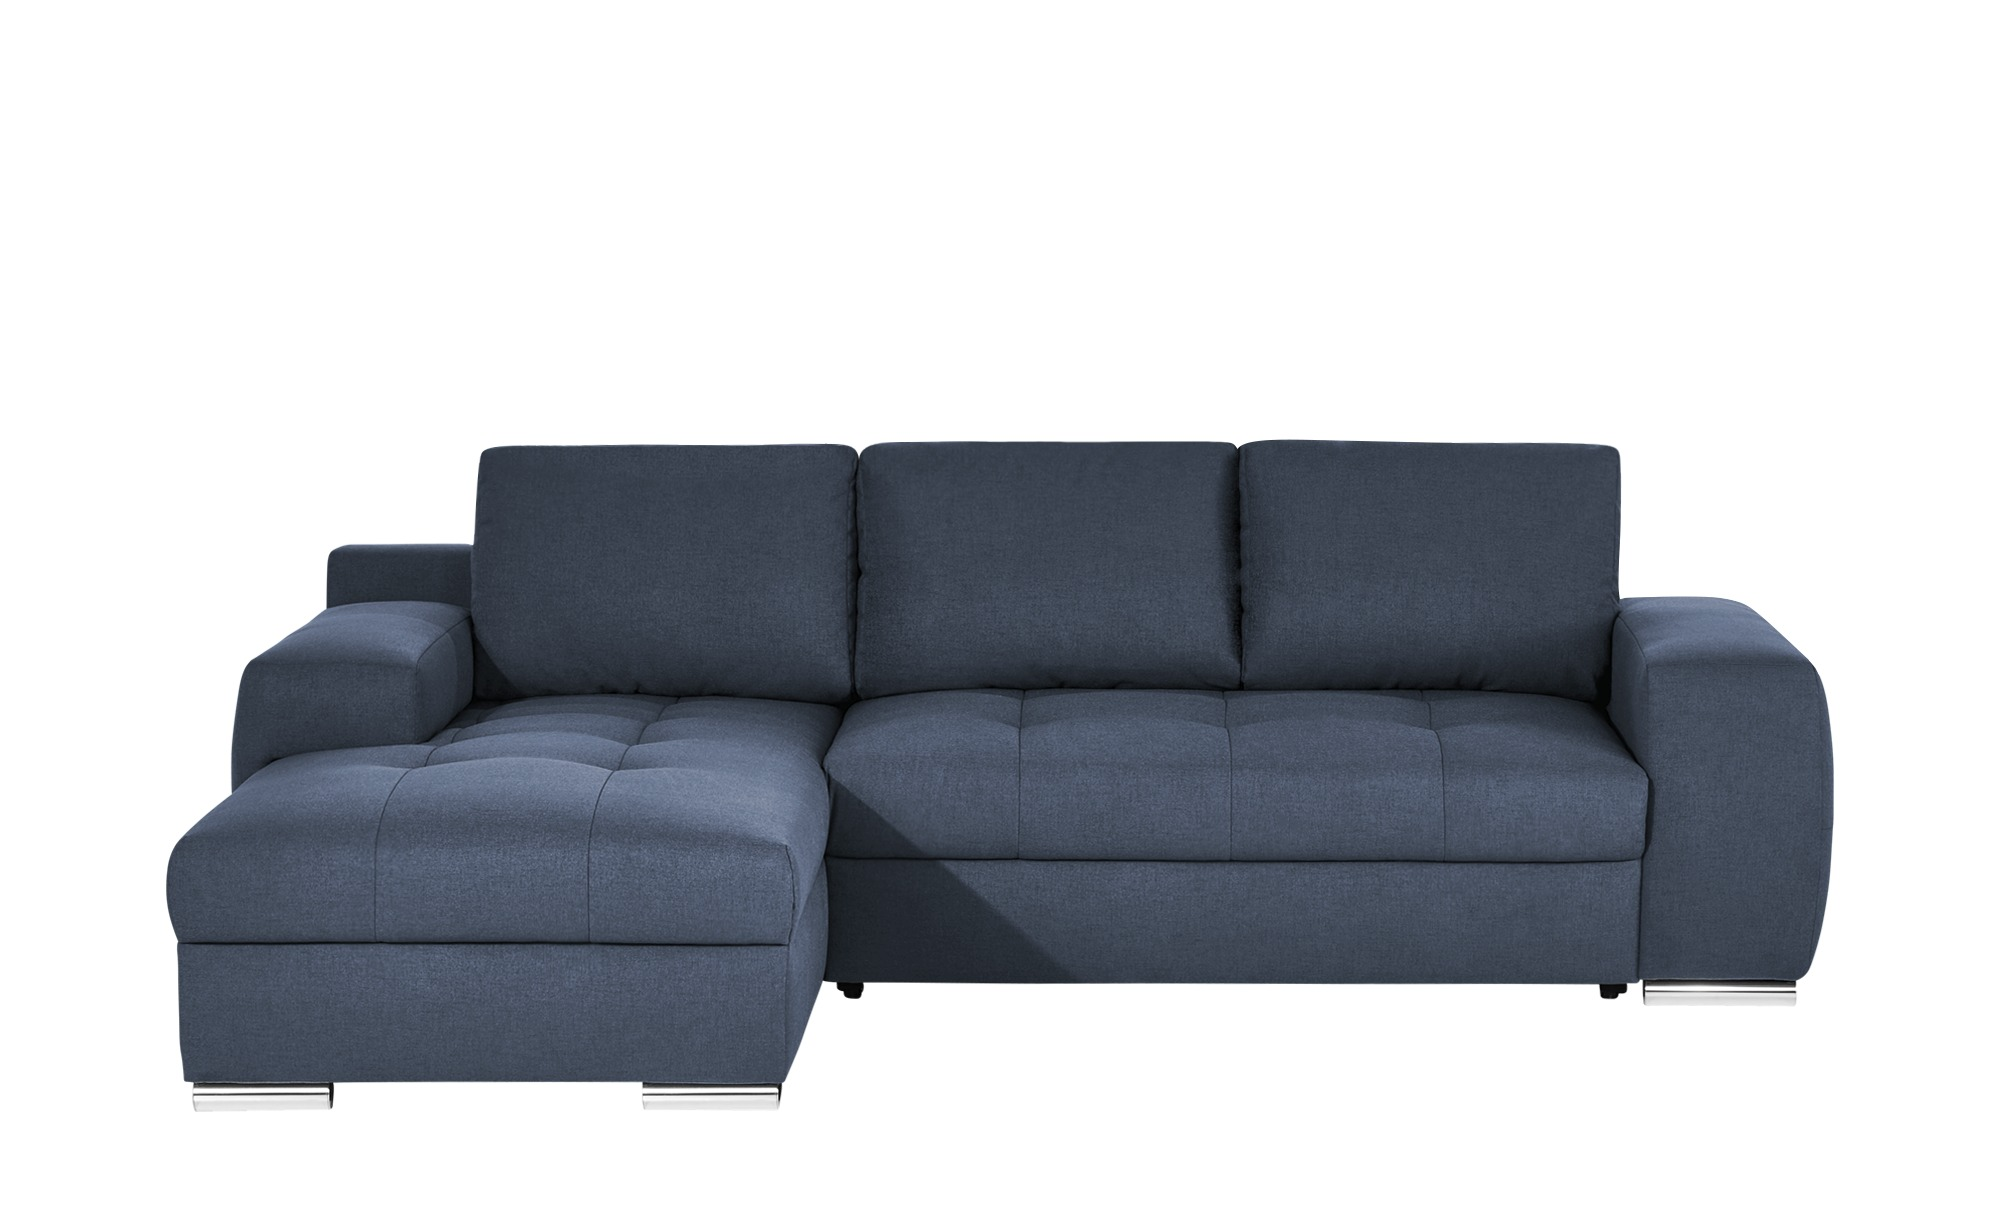 bobb ecksofa mit schlaffunktion fraja breite 90 cm h he 270 cm blau online kaufen bei woonio. Black Bedroom Furniture Sets. Home Design Ideas